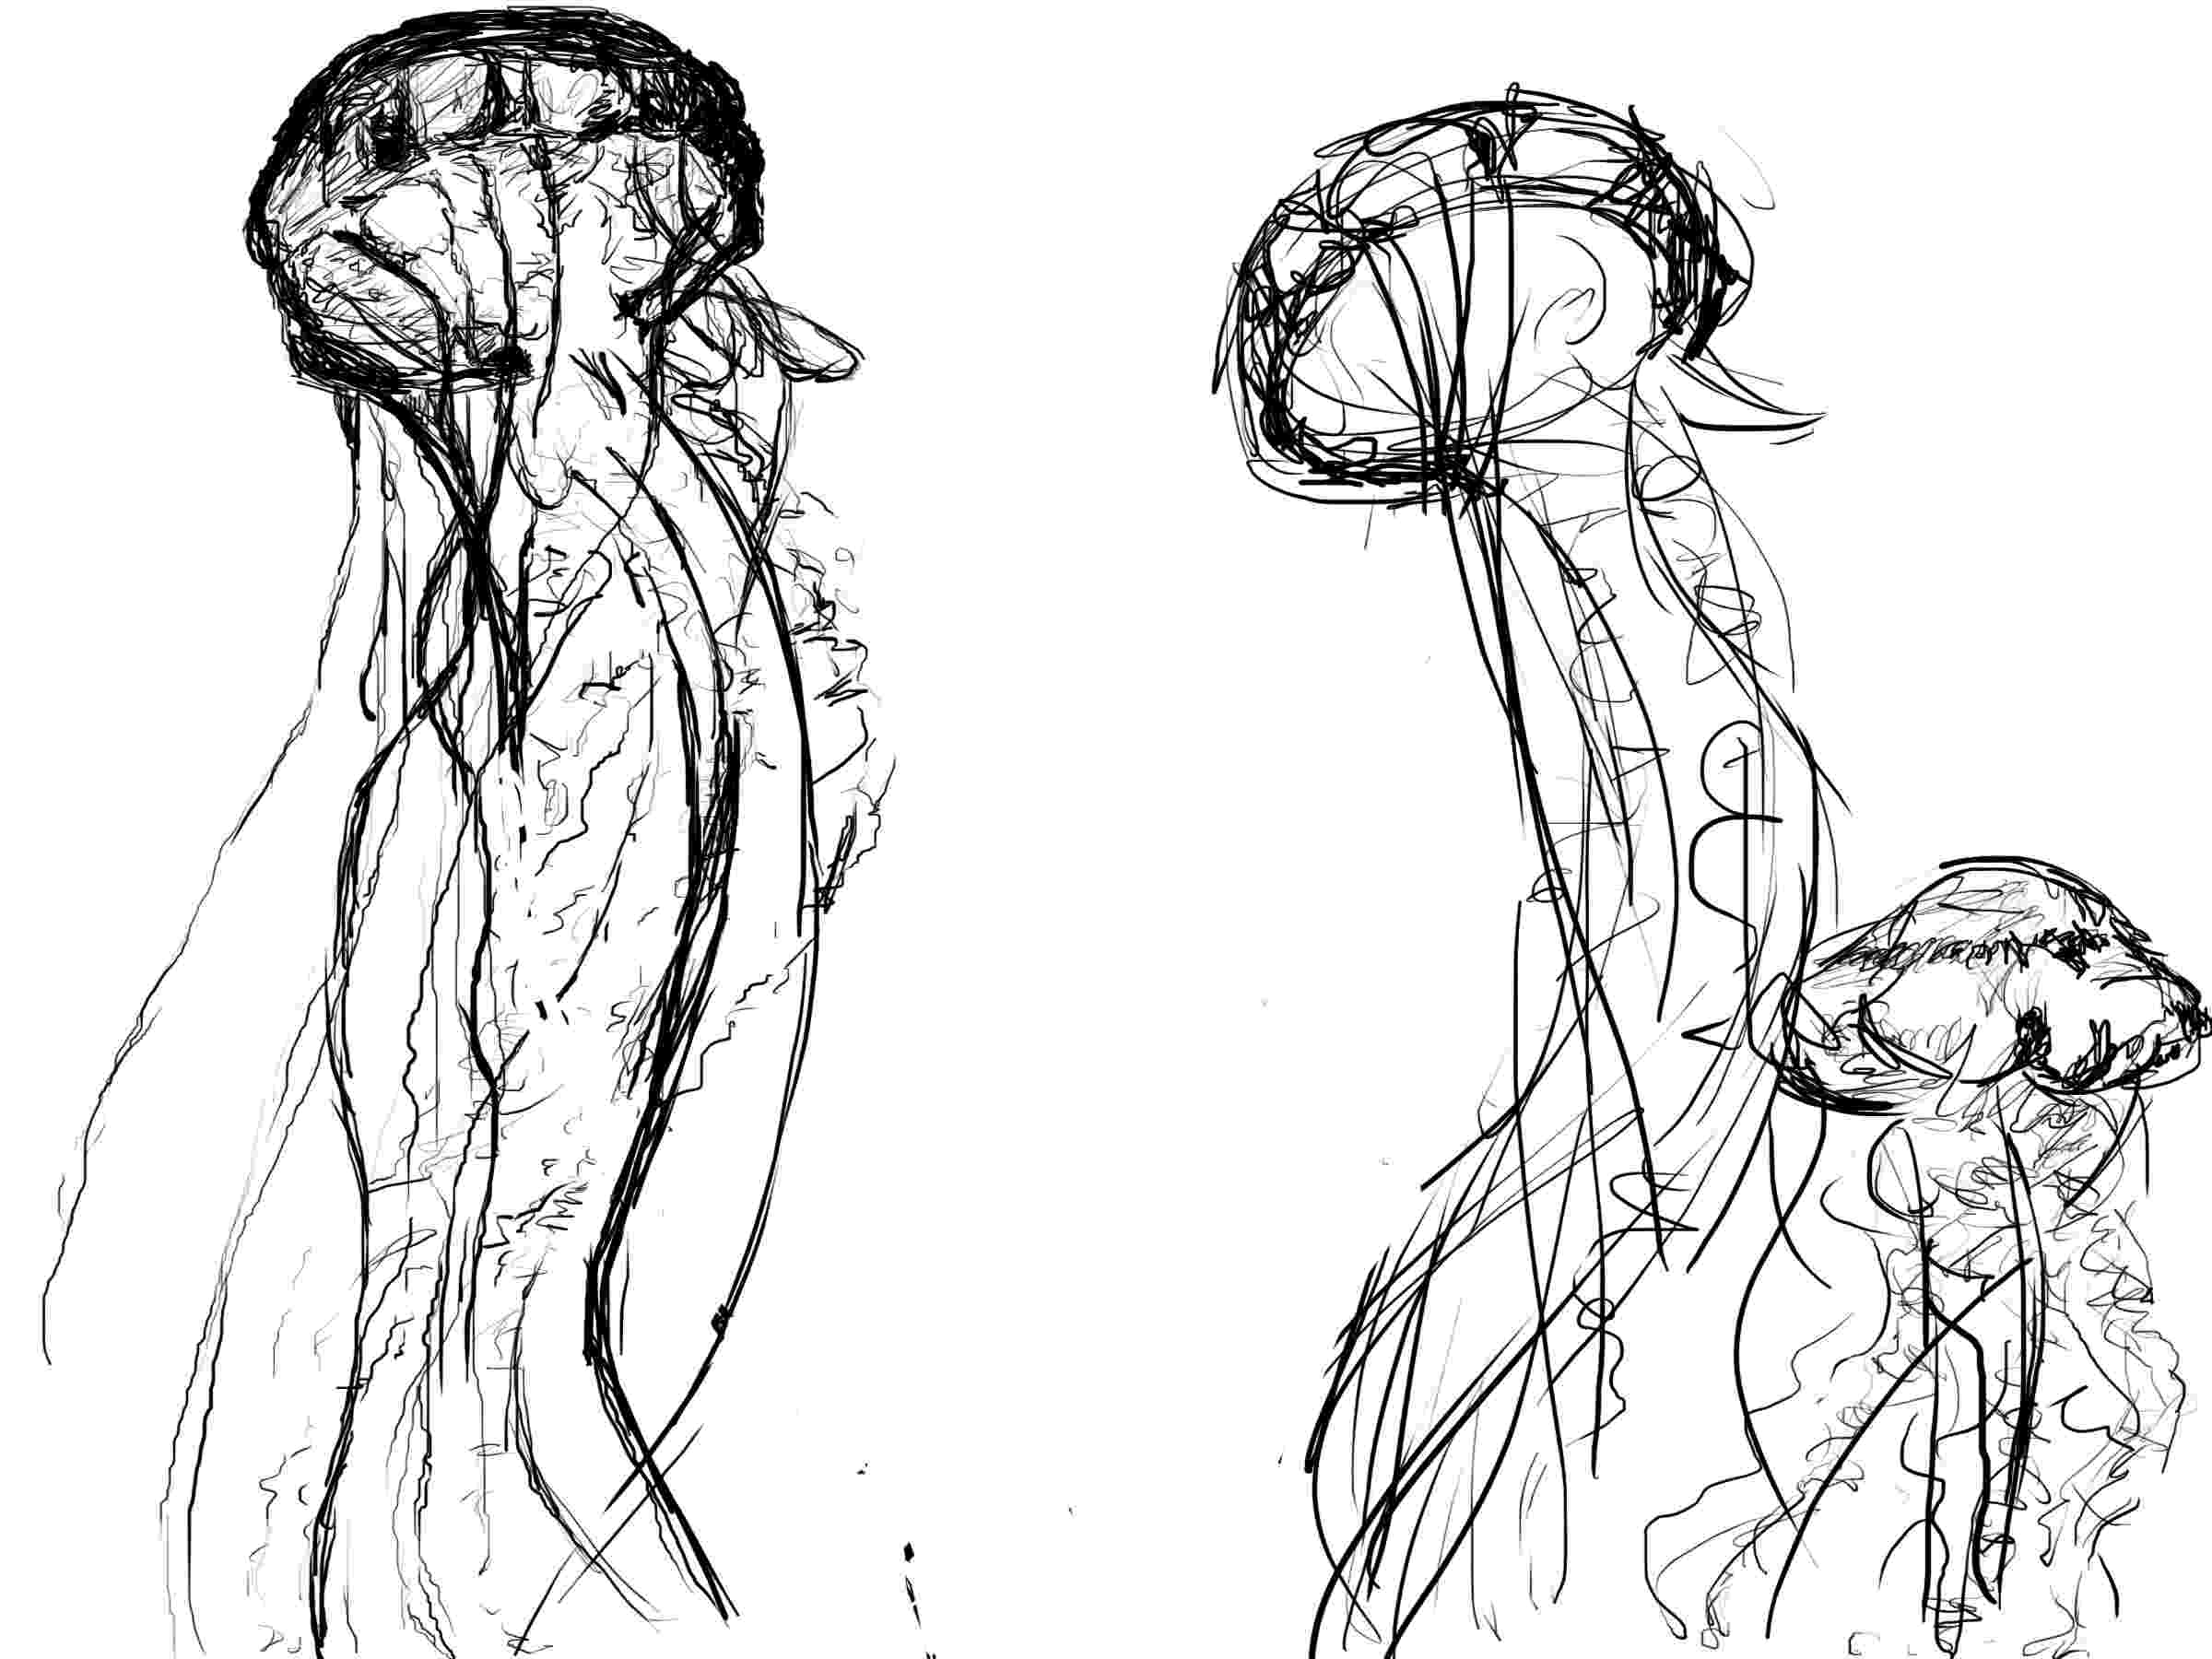 jellyfish sketch jellyfish drawing jellyfish art jellyfish tattoo jellyfish sketch